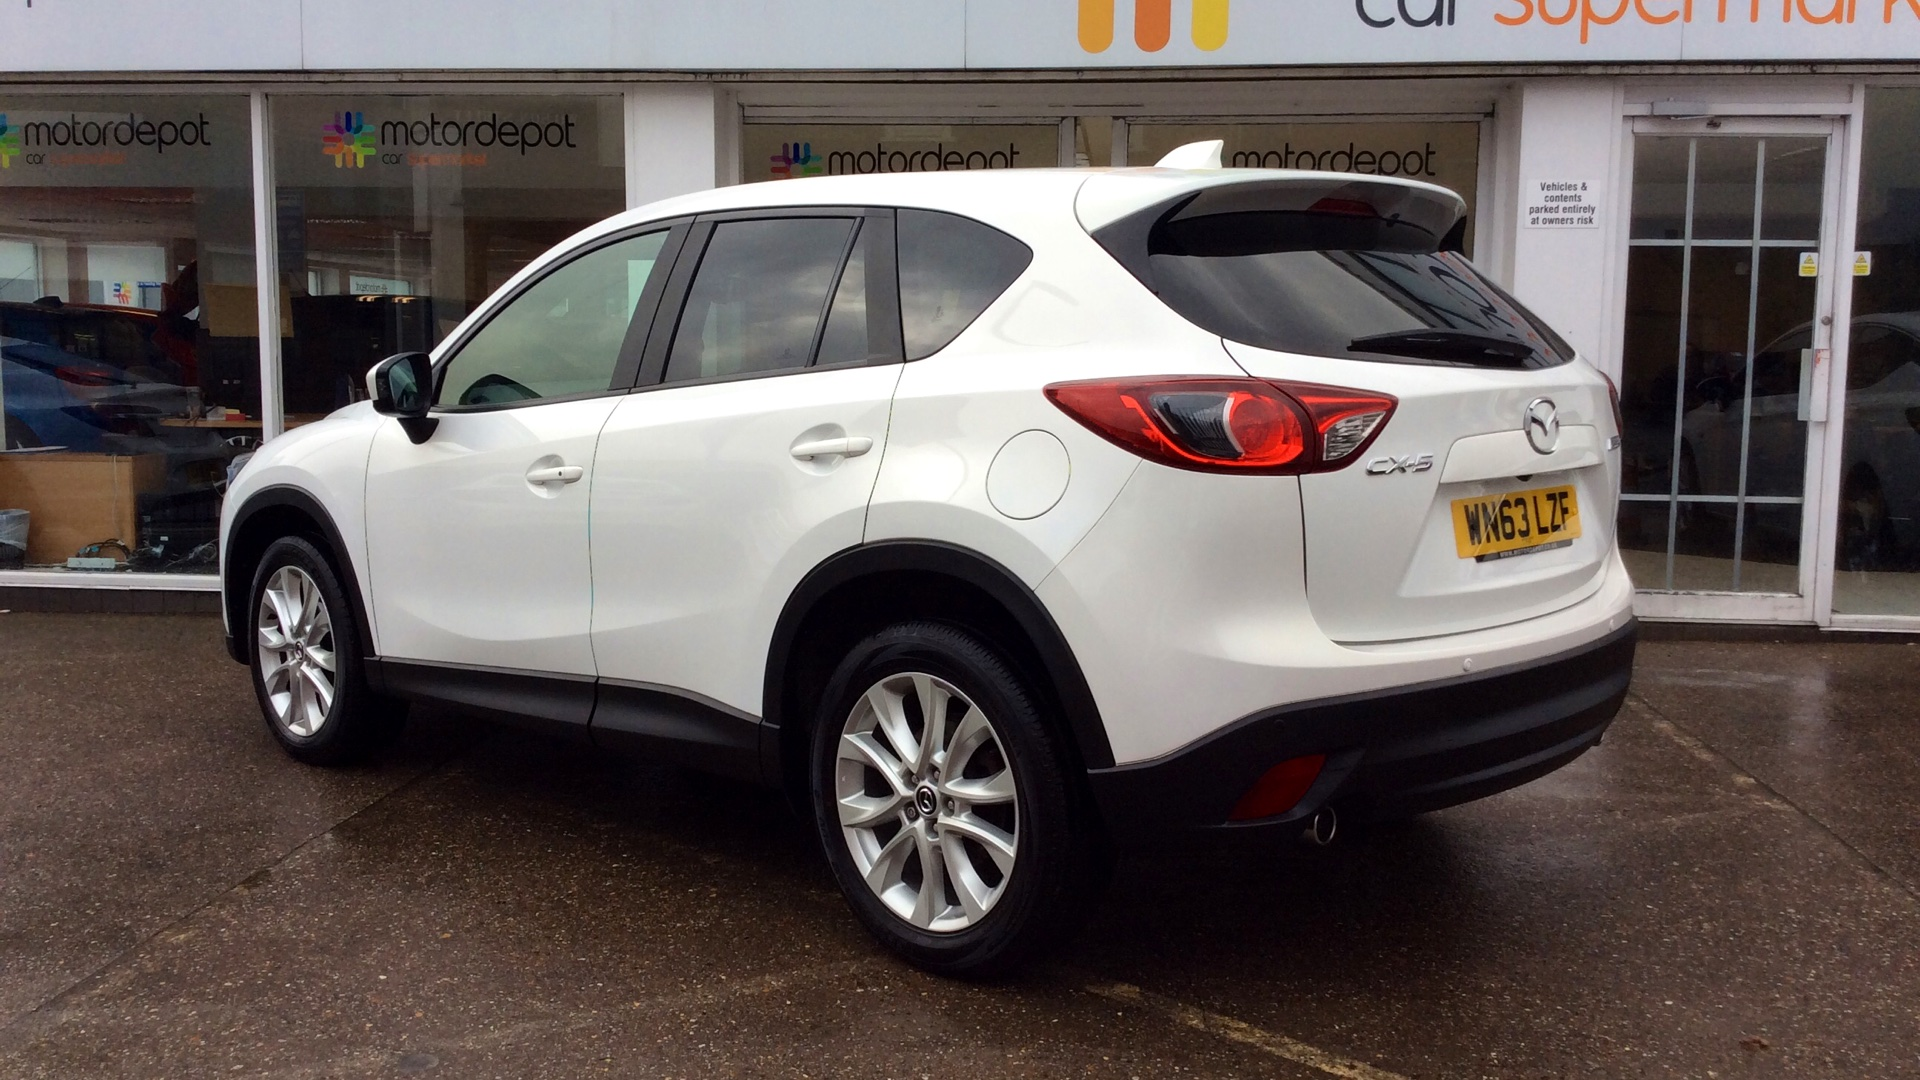 cx compact new mazda sport all of crossover drive first h news